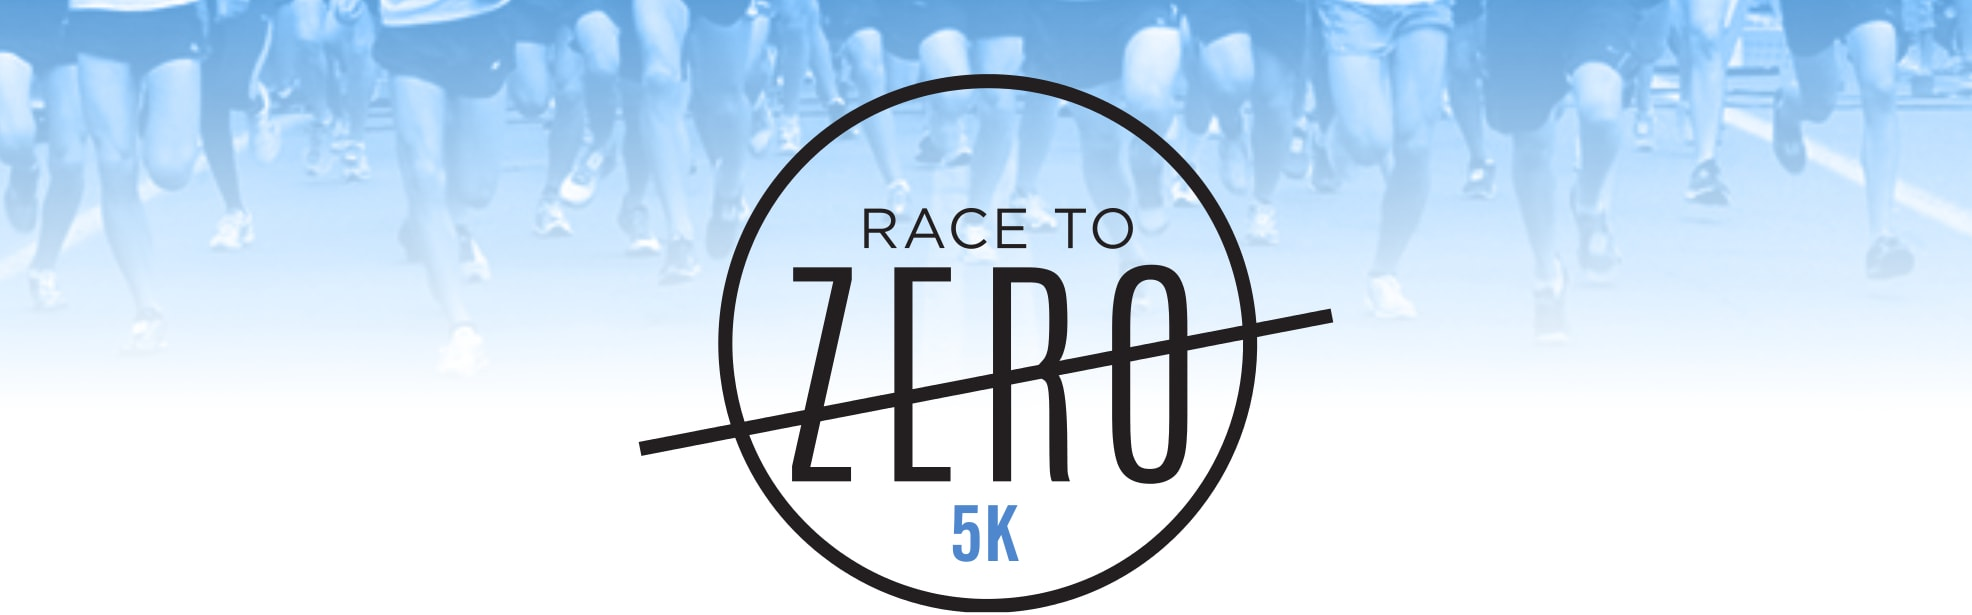 Race to Zero Above & Beyond Mission 5K